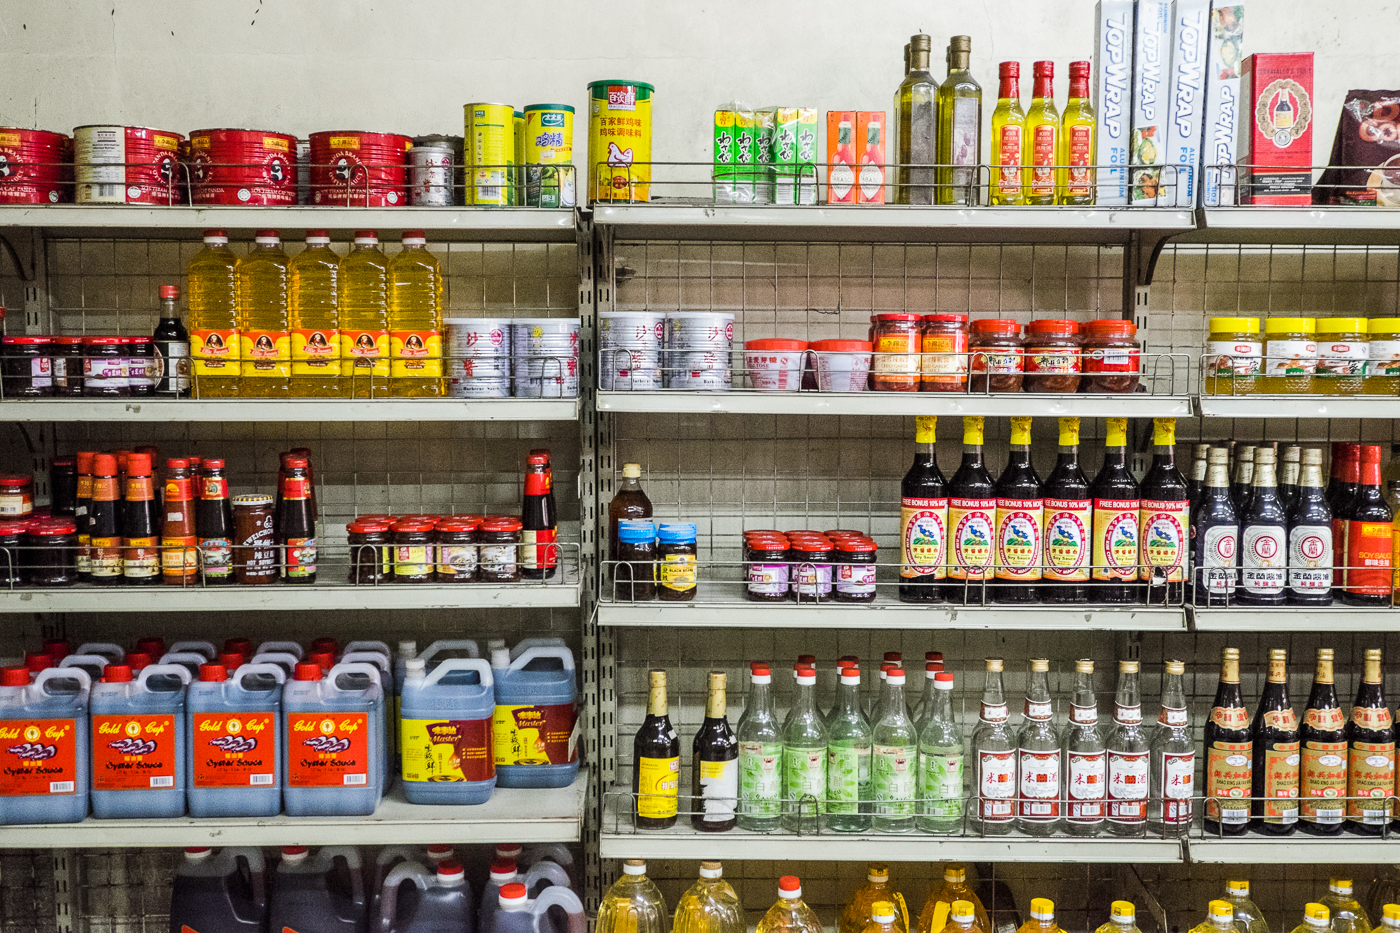 Kangsheng trading sells various condiments which are imported from China and other Asian countries.